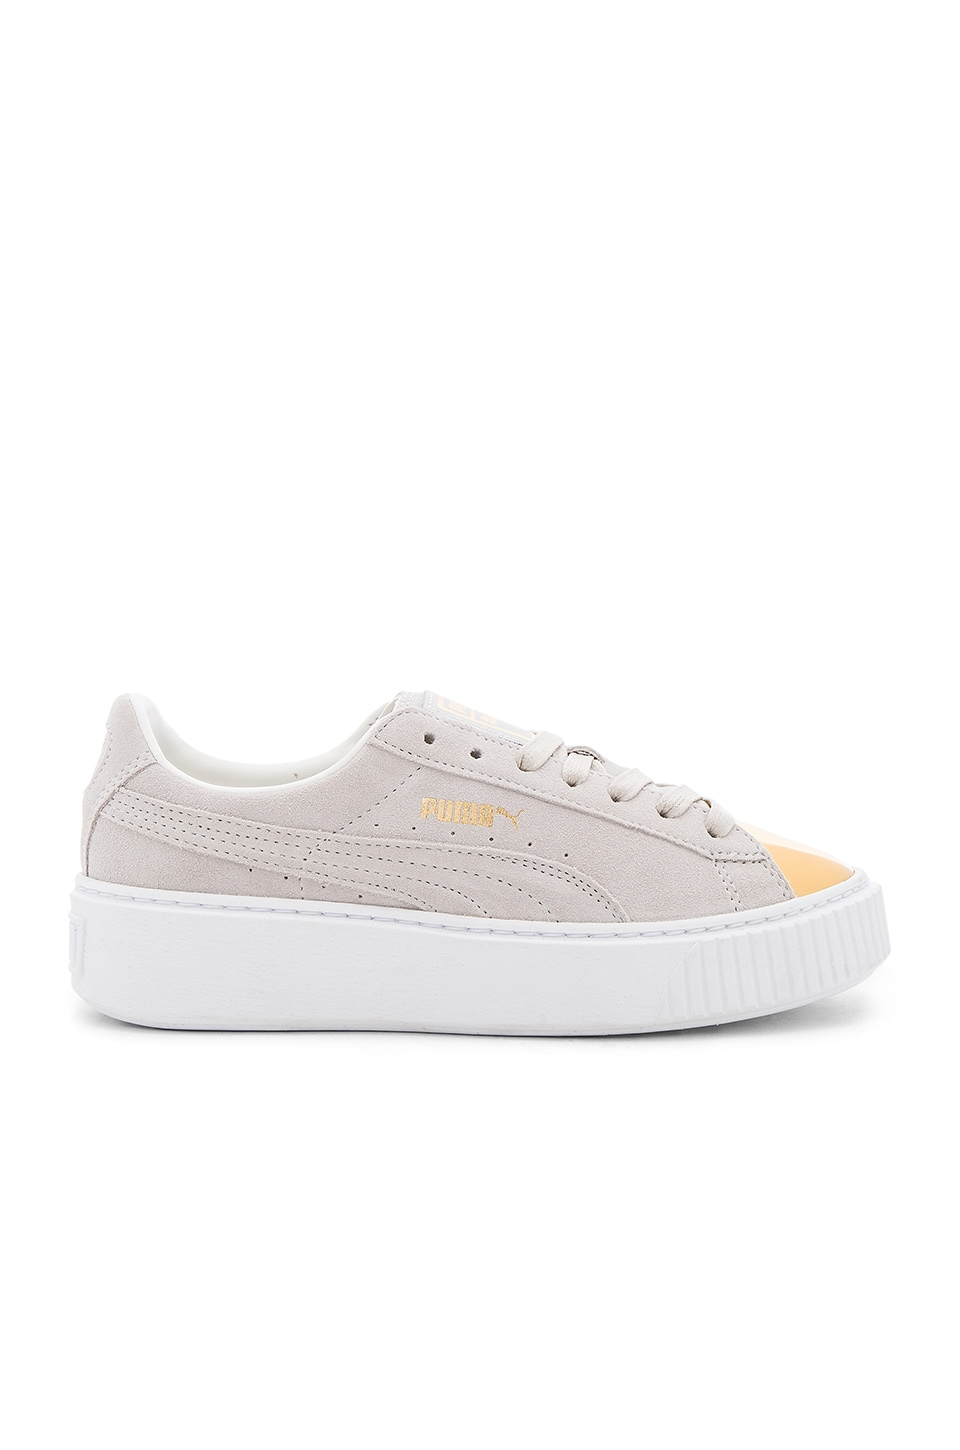 Puma Creeper Gold Toe Sneaker in Gold & Star White